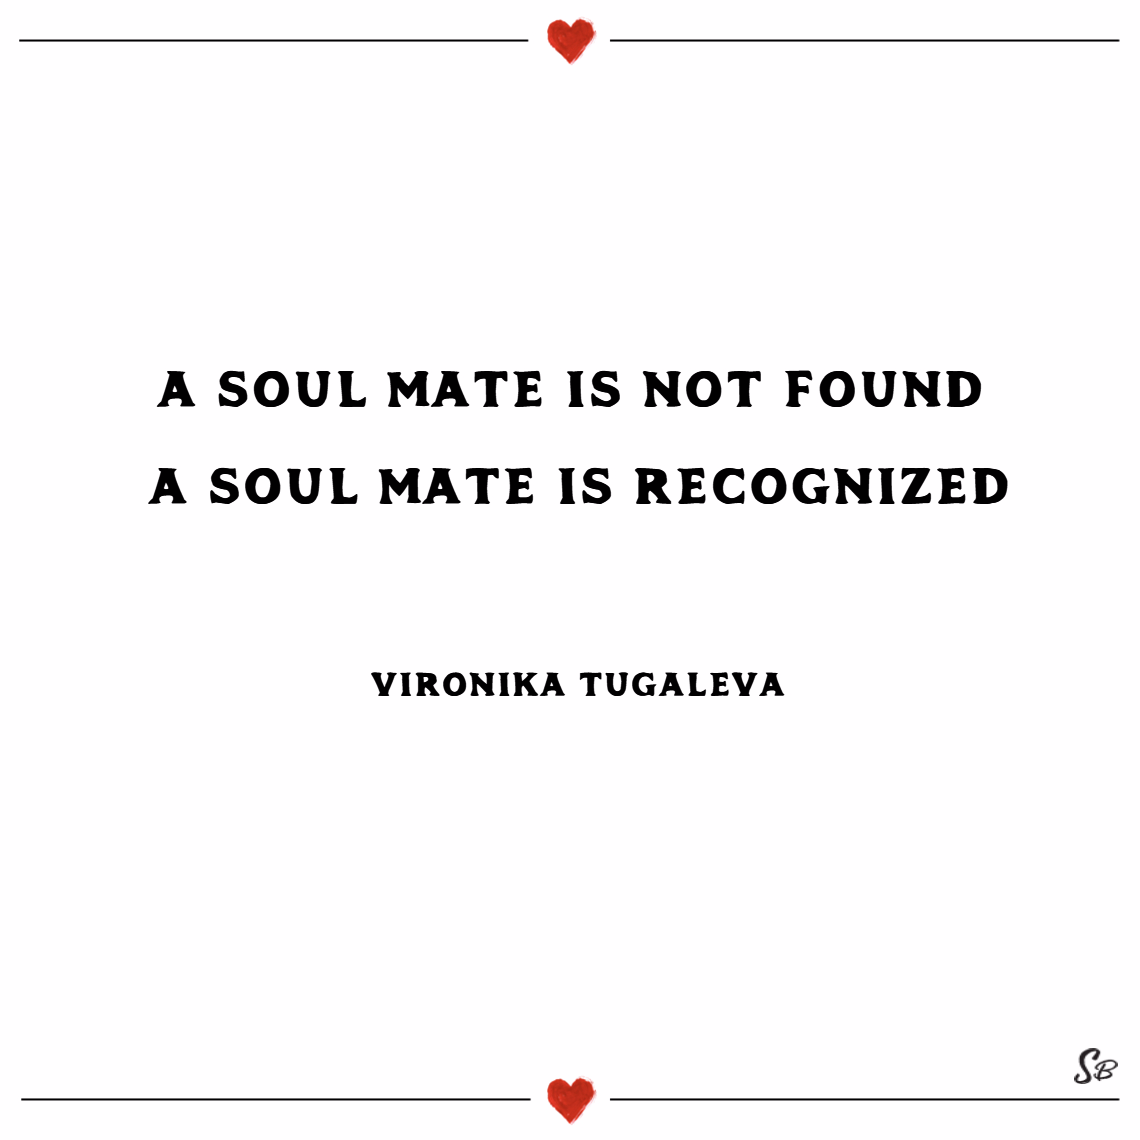 A soul mate is not found. a soul mate is recognized. – vironika tugaleva